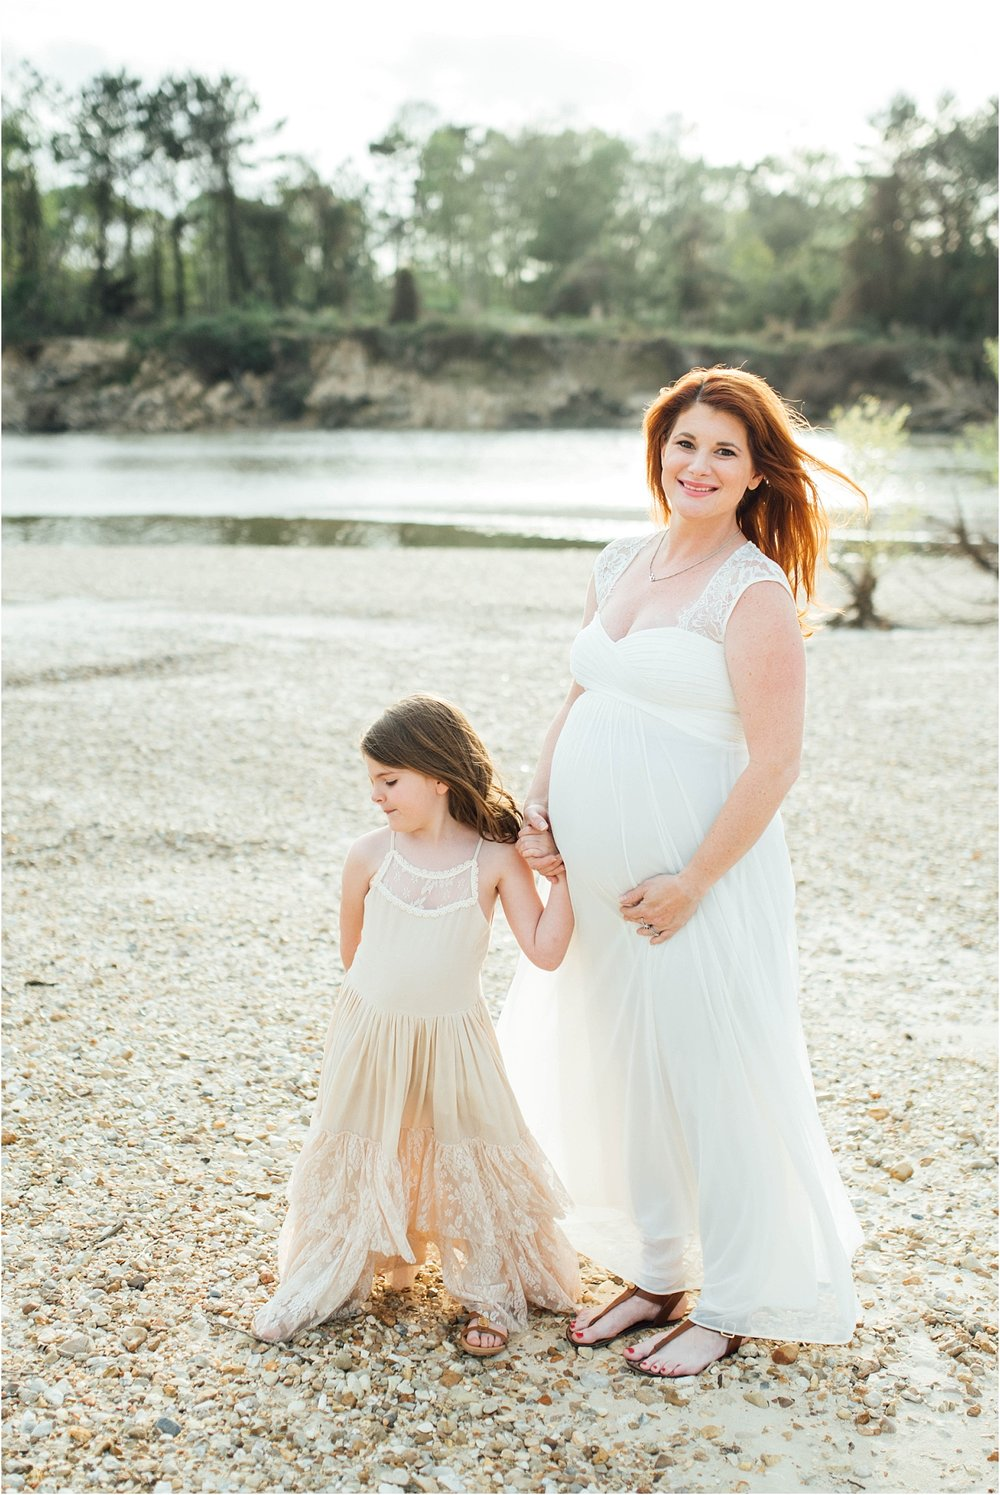 Sarah + Charlotte-Mommy-and-Me-Amite-River-Maternity-Photos_Gabby Chapin_Print_0010_BLOG.jpg